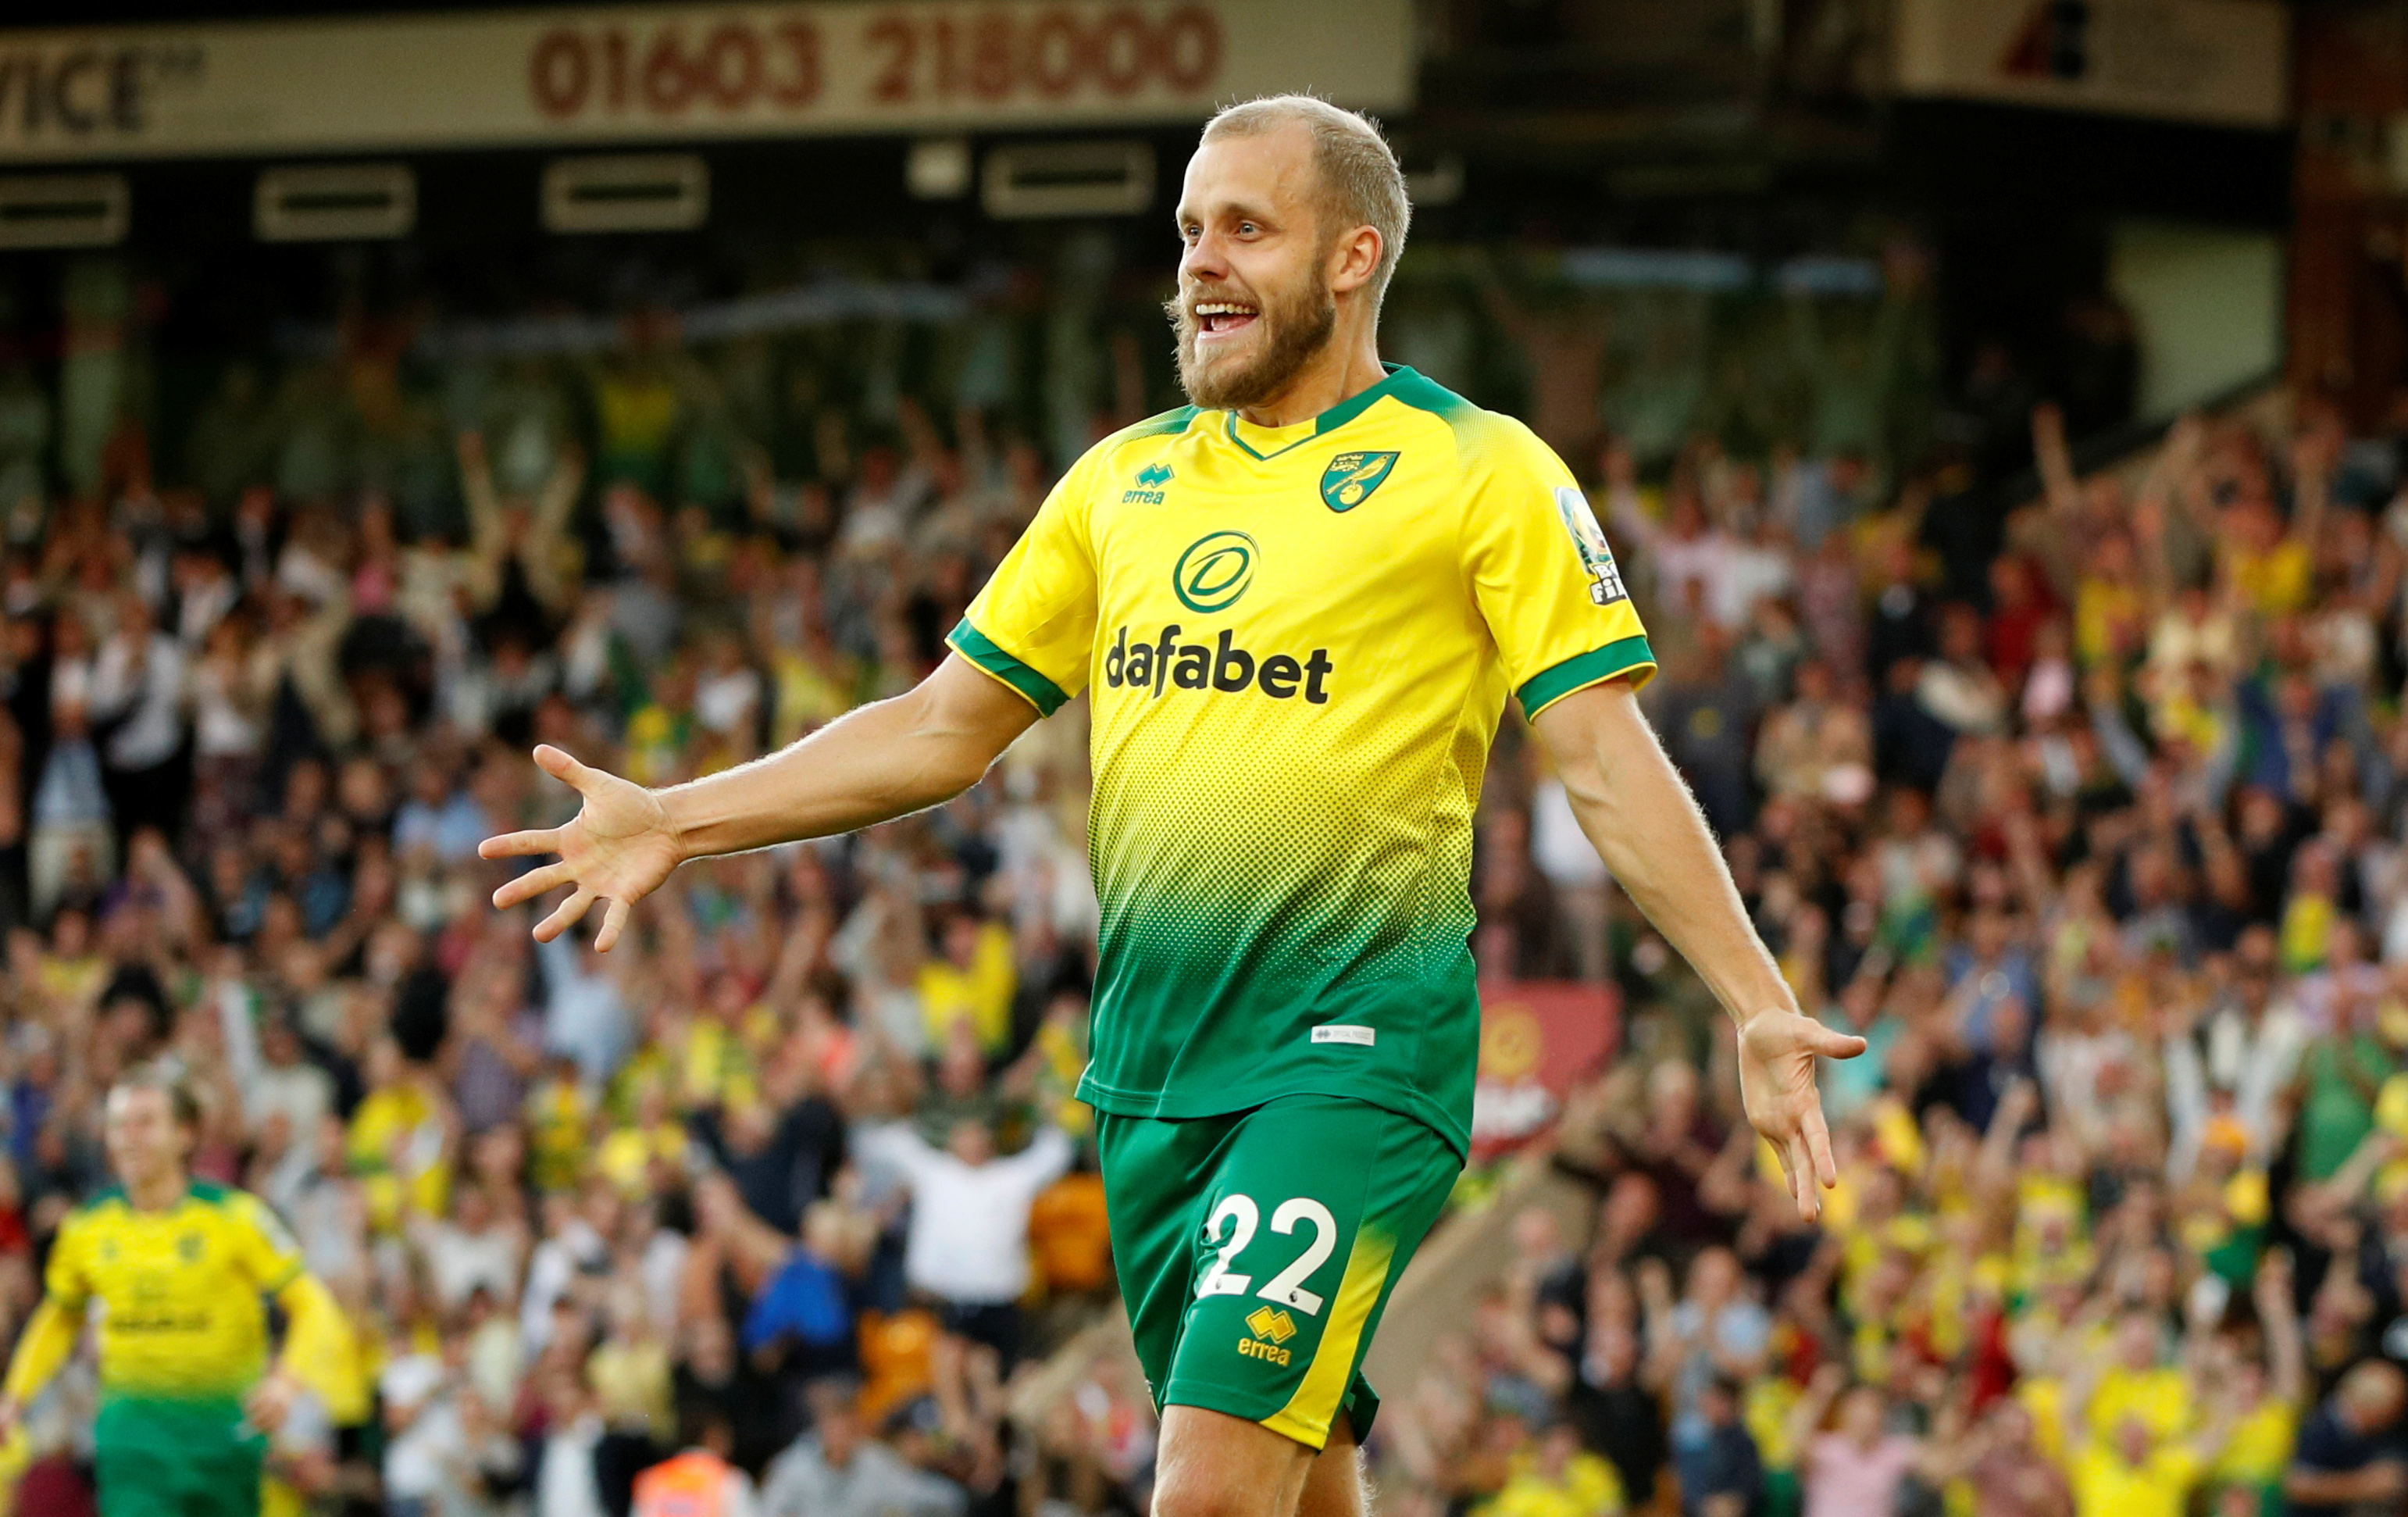 Pukki fever reaches France as Macron is gifted Finn's jersey